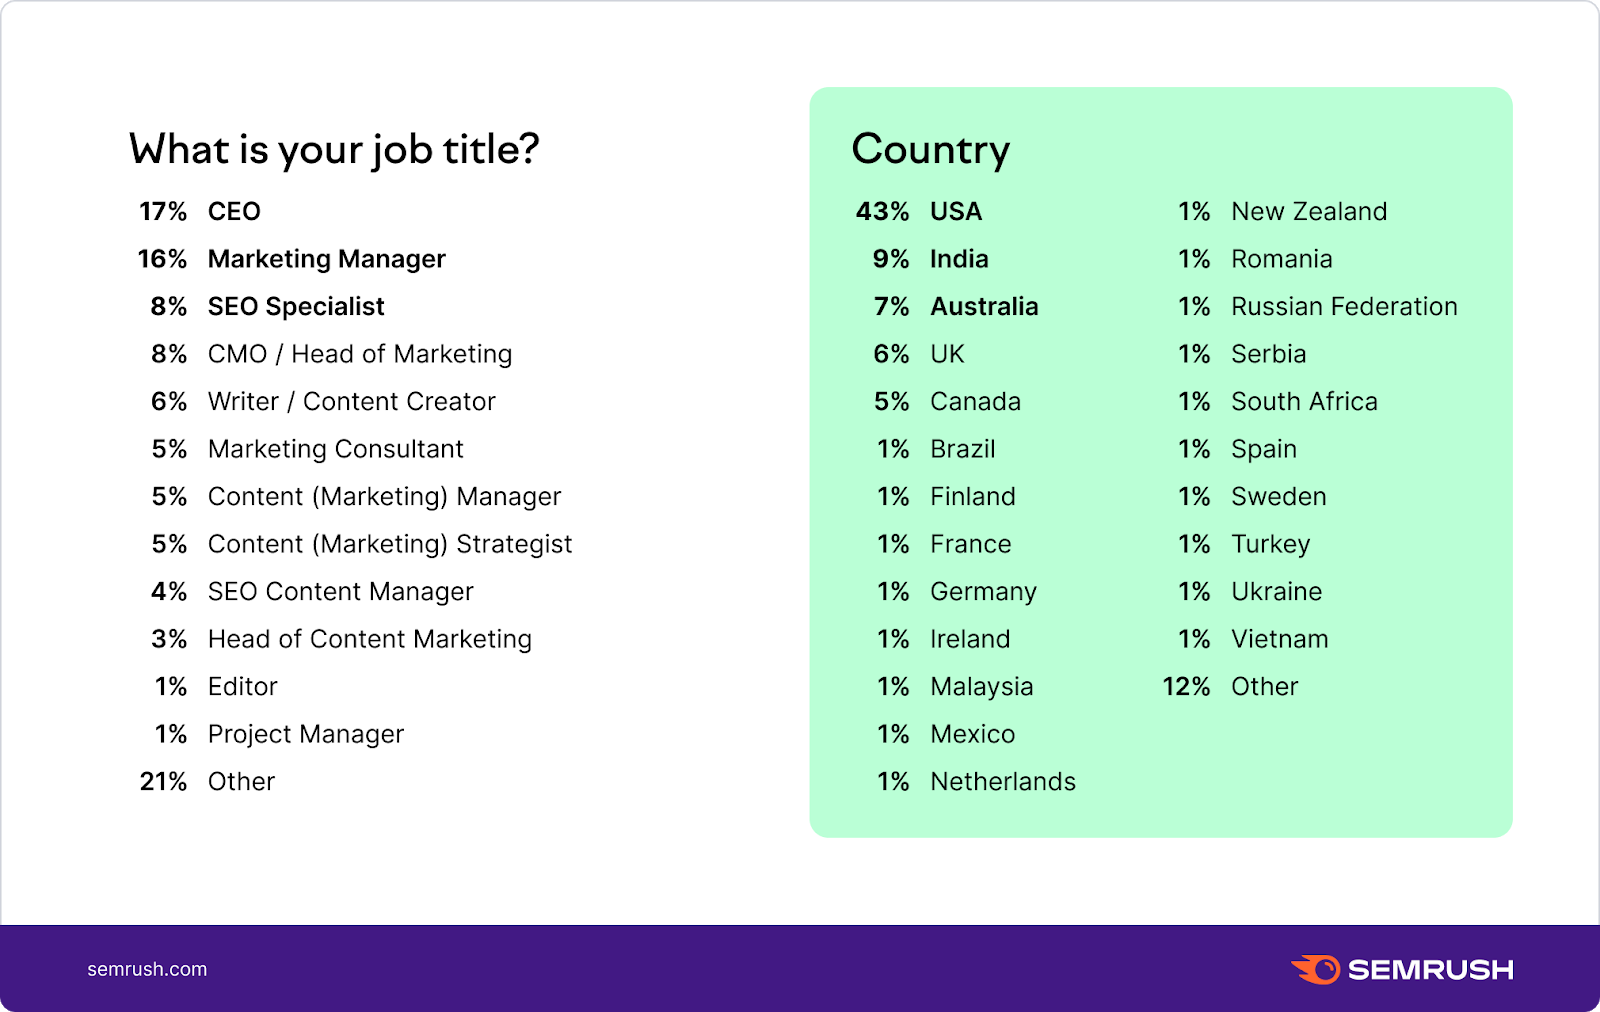 Job titles and countries